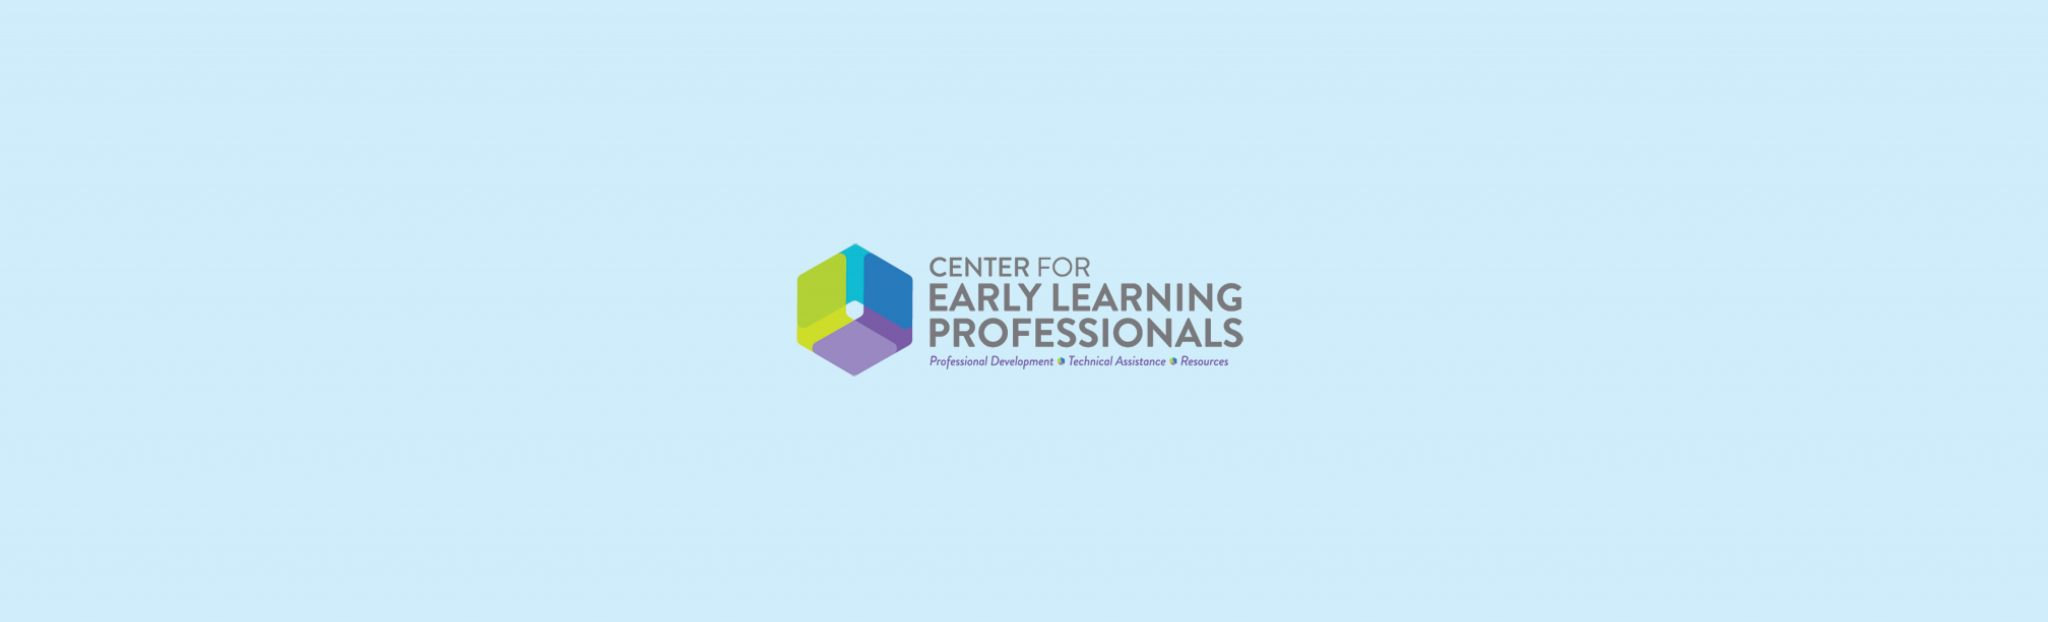 Center for Early Learning Professionals trainings